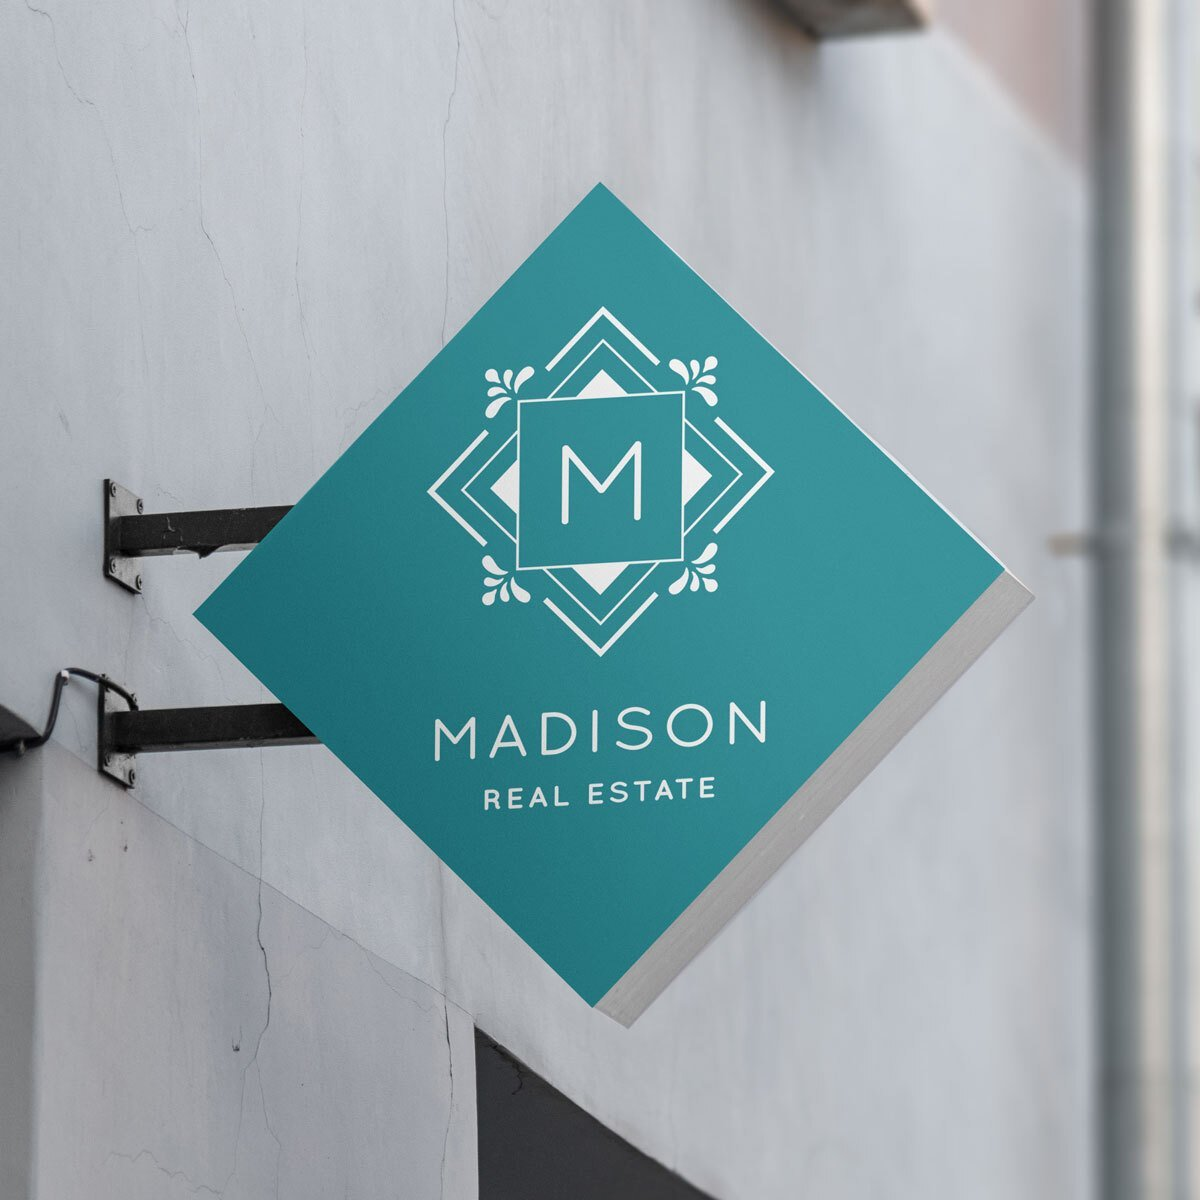 Madison Real Estate Logo Design by BrandSwan, a logo design company